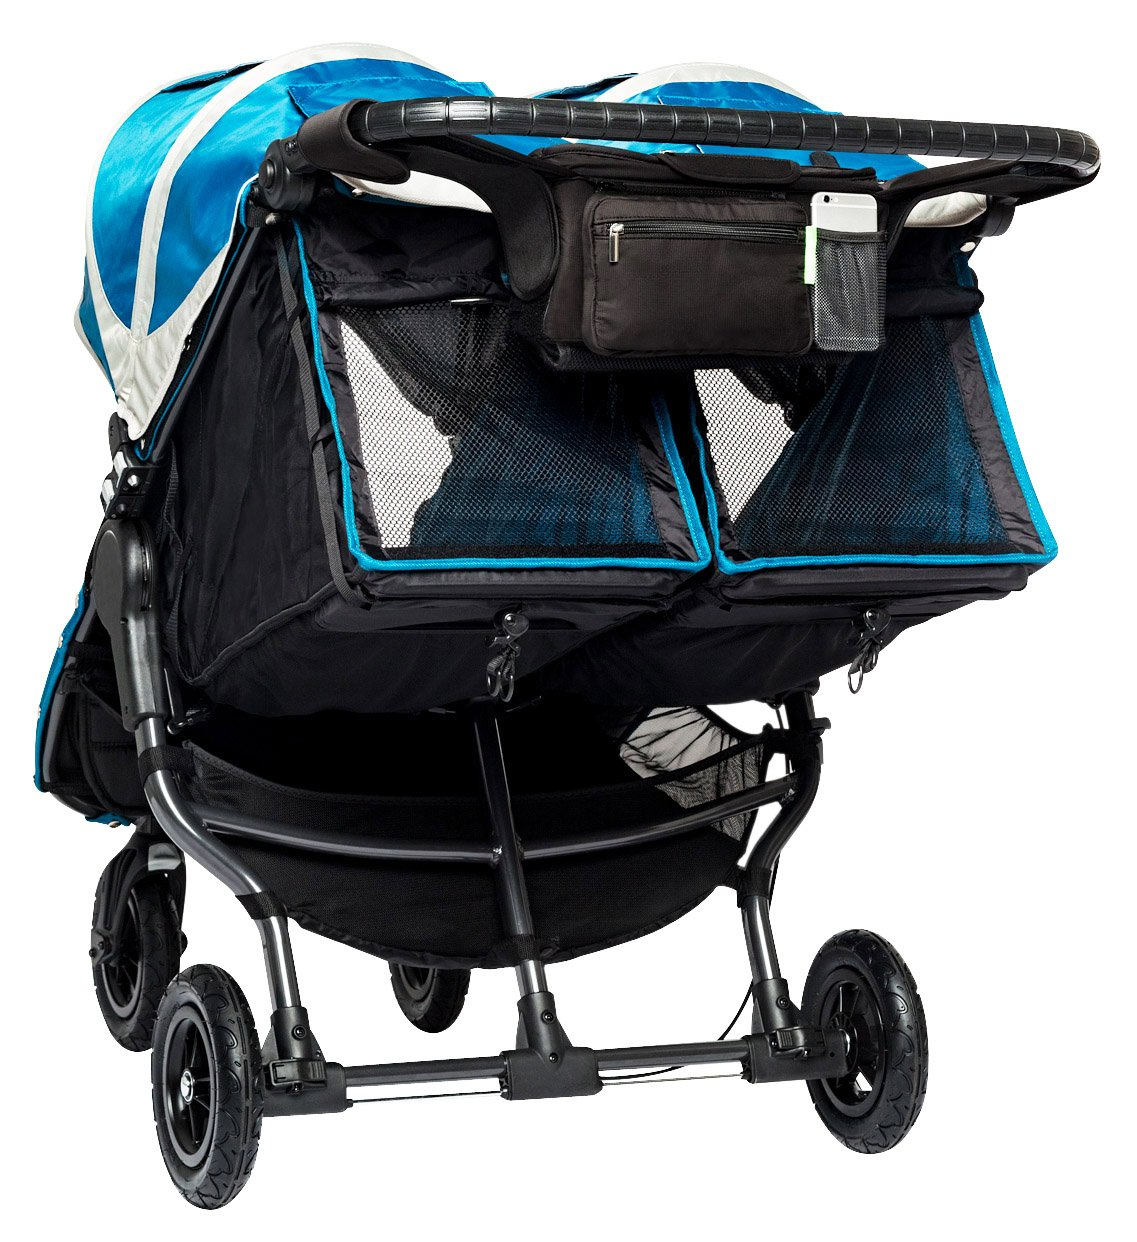 Ethan & Emma Double Stroller Organizer with Cup Holders - Fits Both Single & Double Strollers - Baby Shower Gift - Secured Fit & Extra Storage - Universal Stroller Organizer and Stroller Accessory